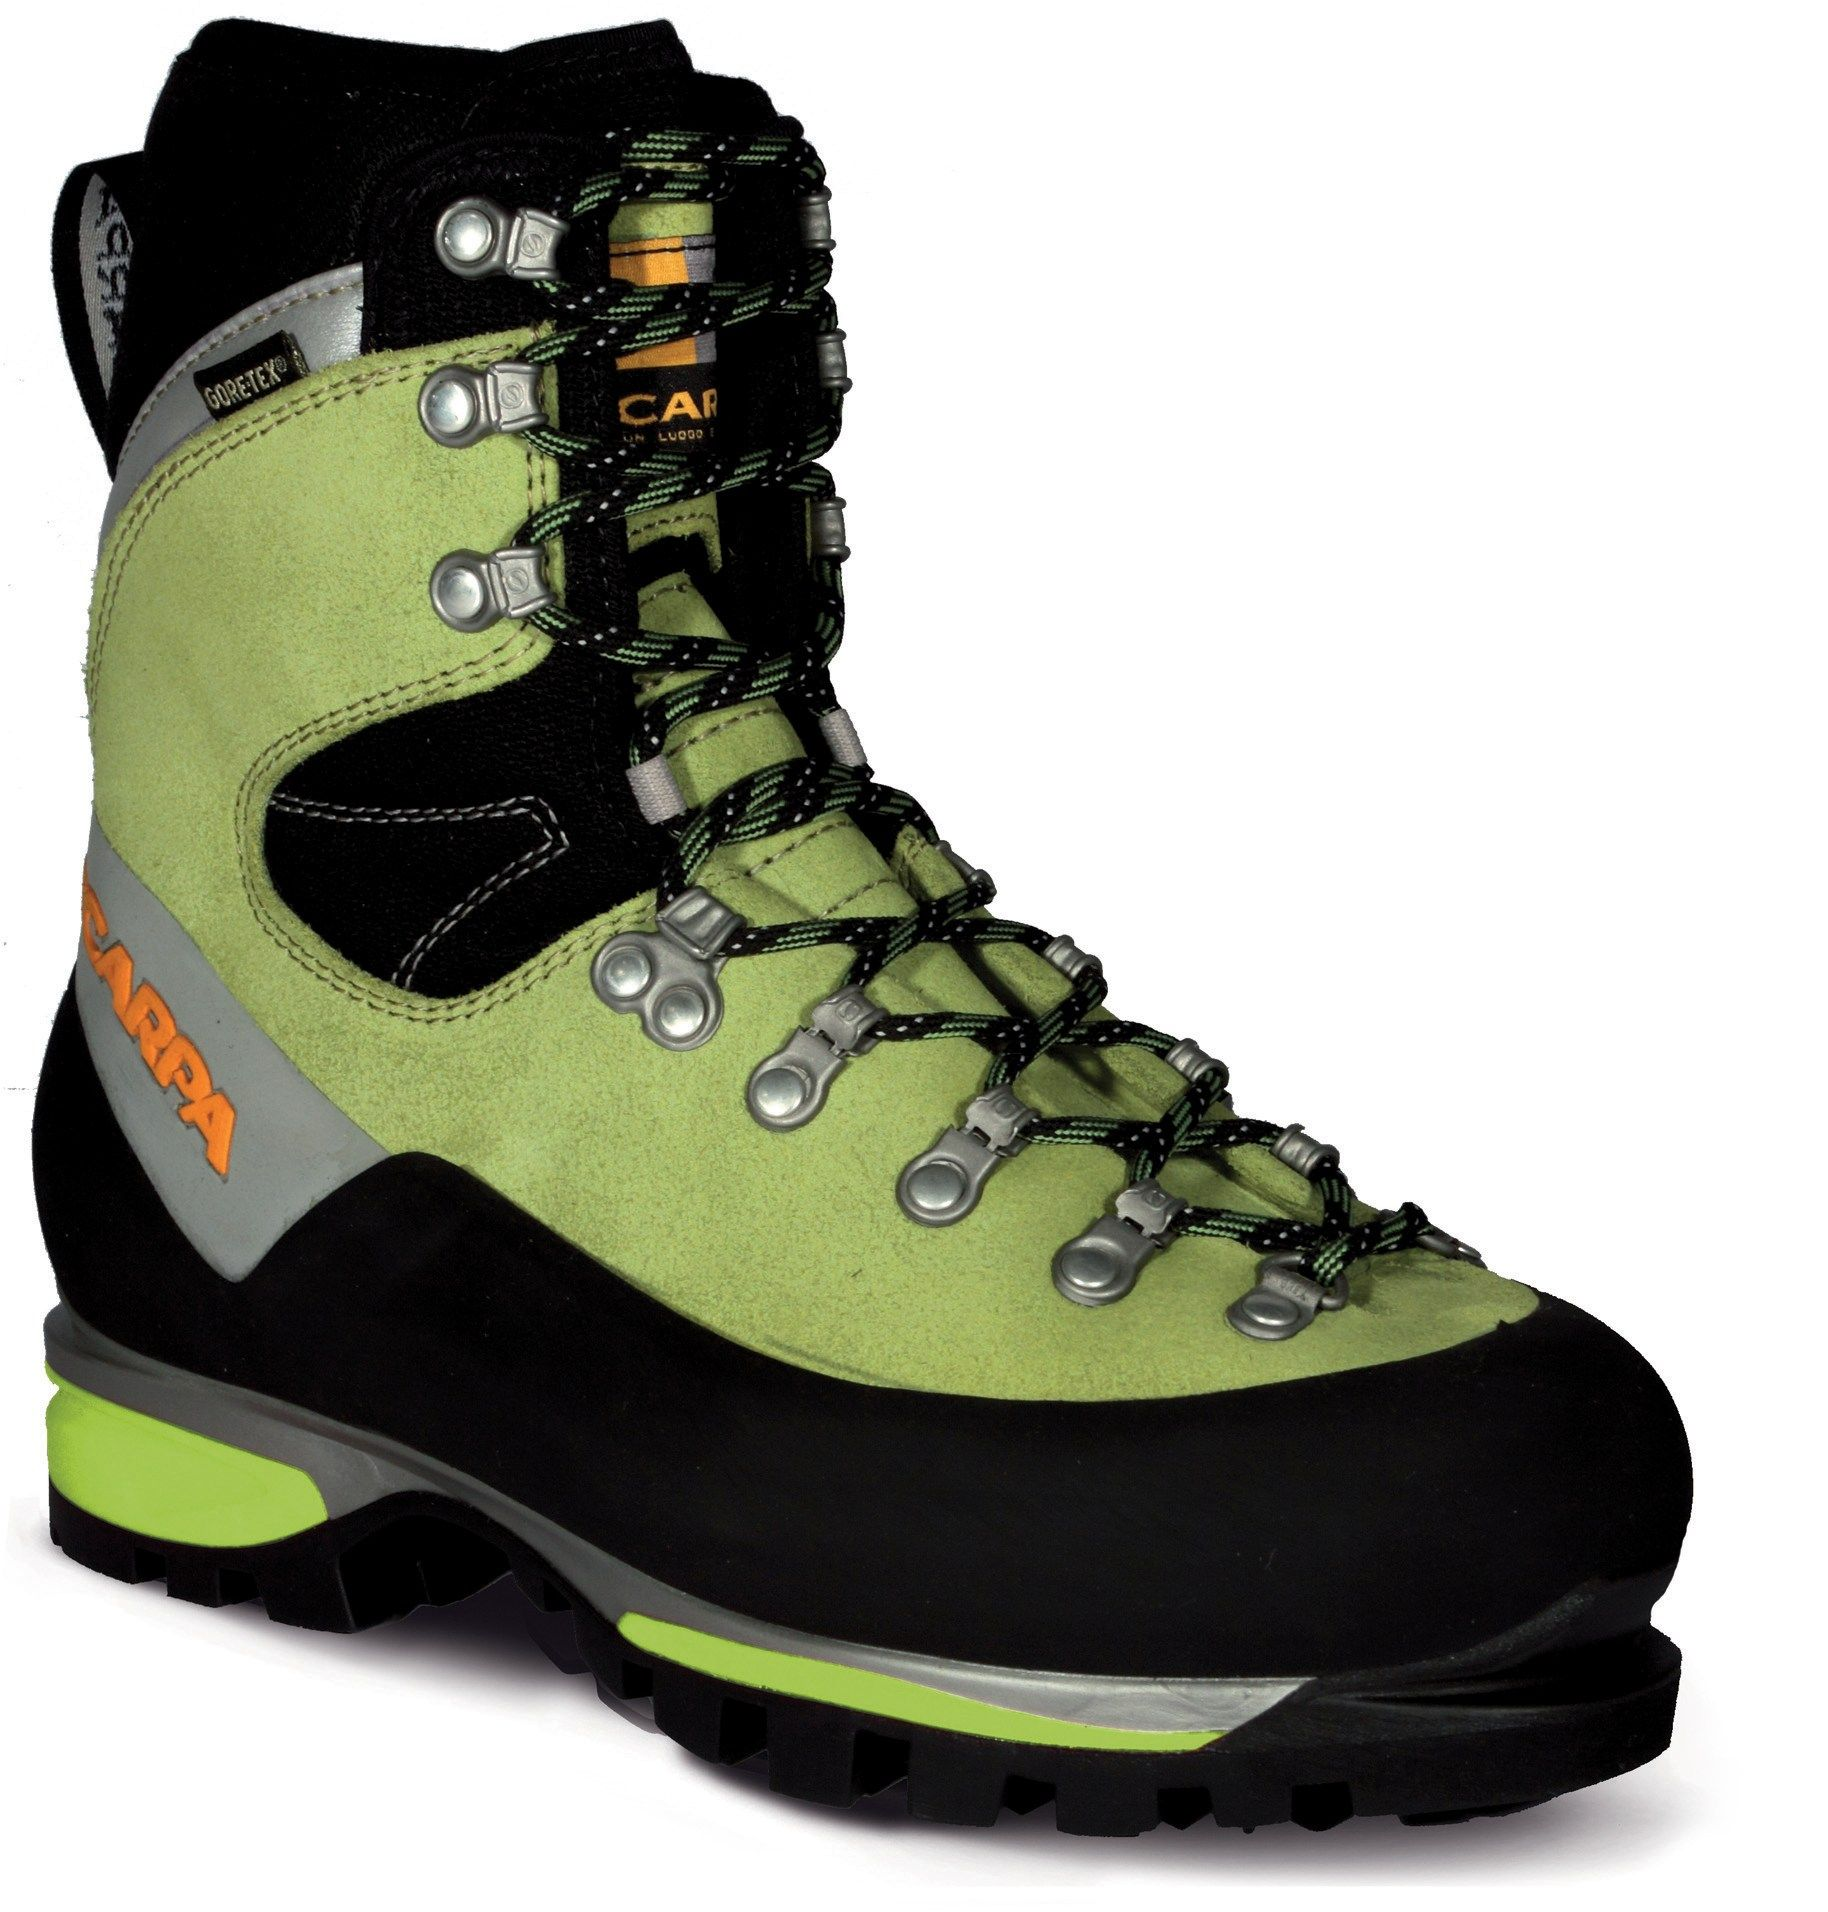 ea66c7284138b Scarpa Mont Blanc GTX Mountaineering Boots - Women s - Free Shipping at  REI.com